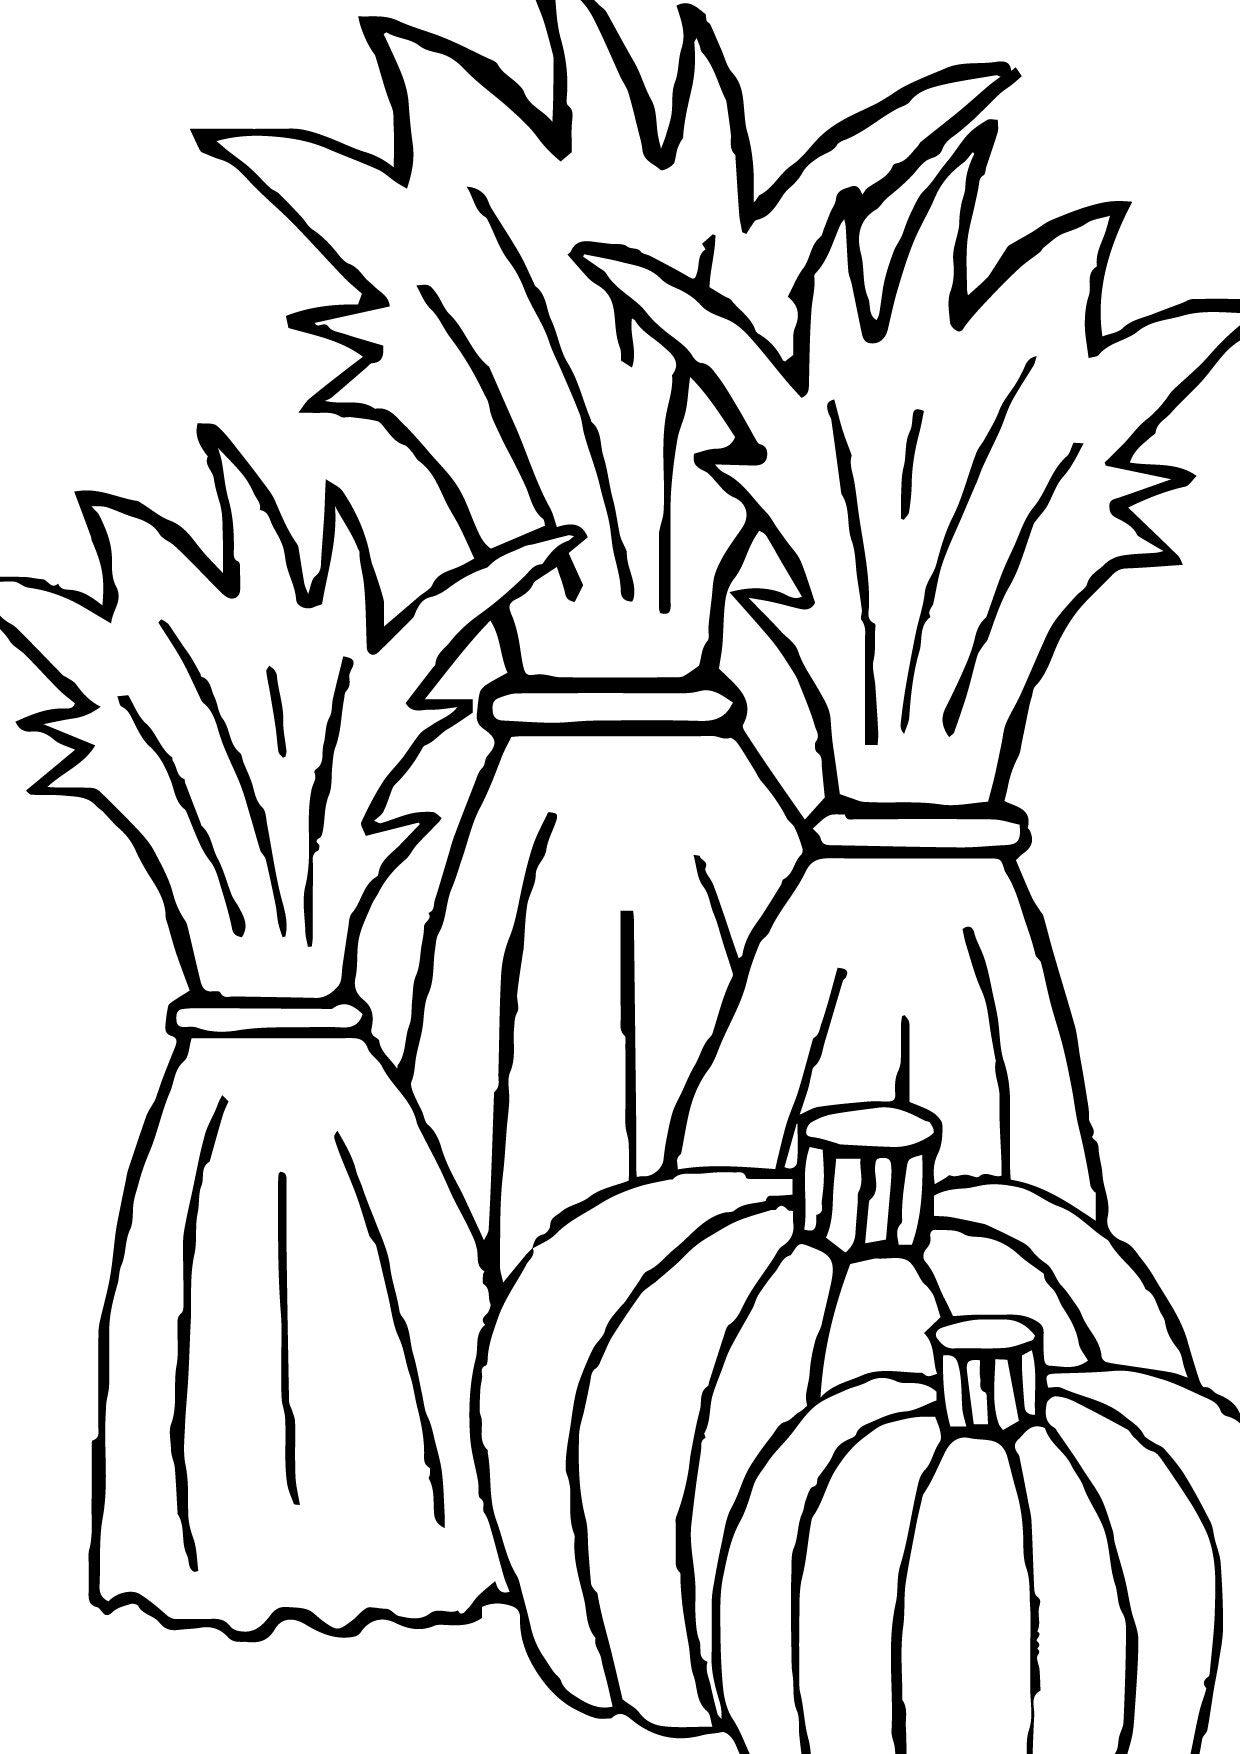 Awesome Corn Stalk Coloring Page 08 09 2015 081307